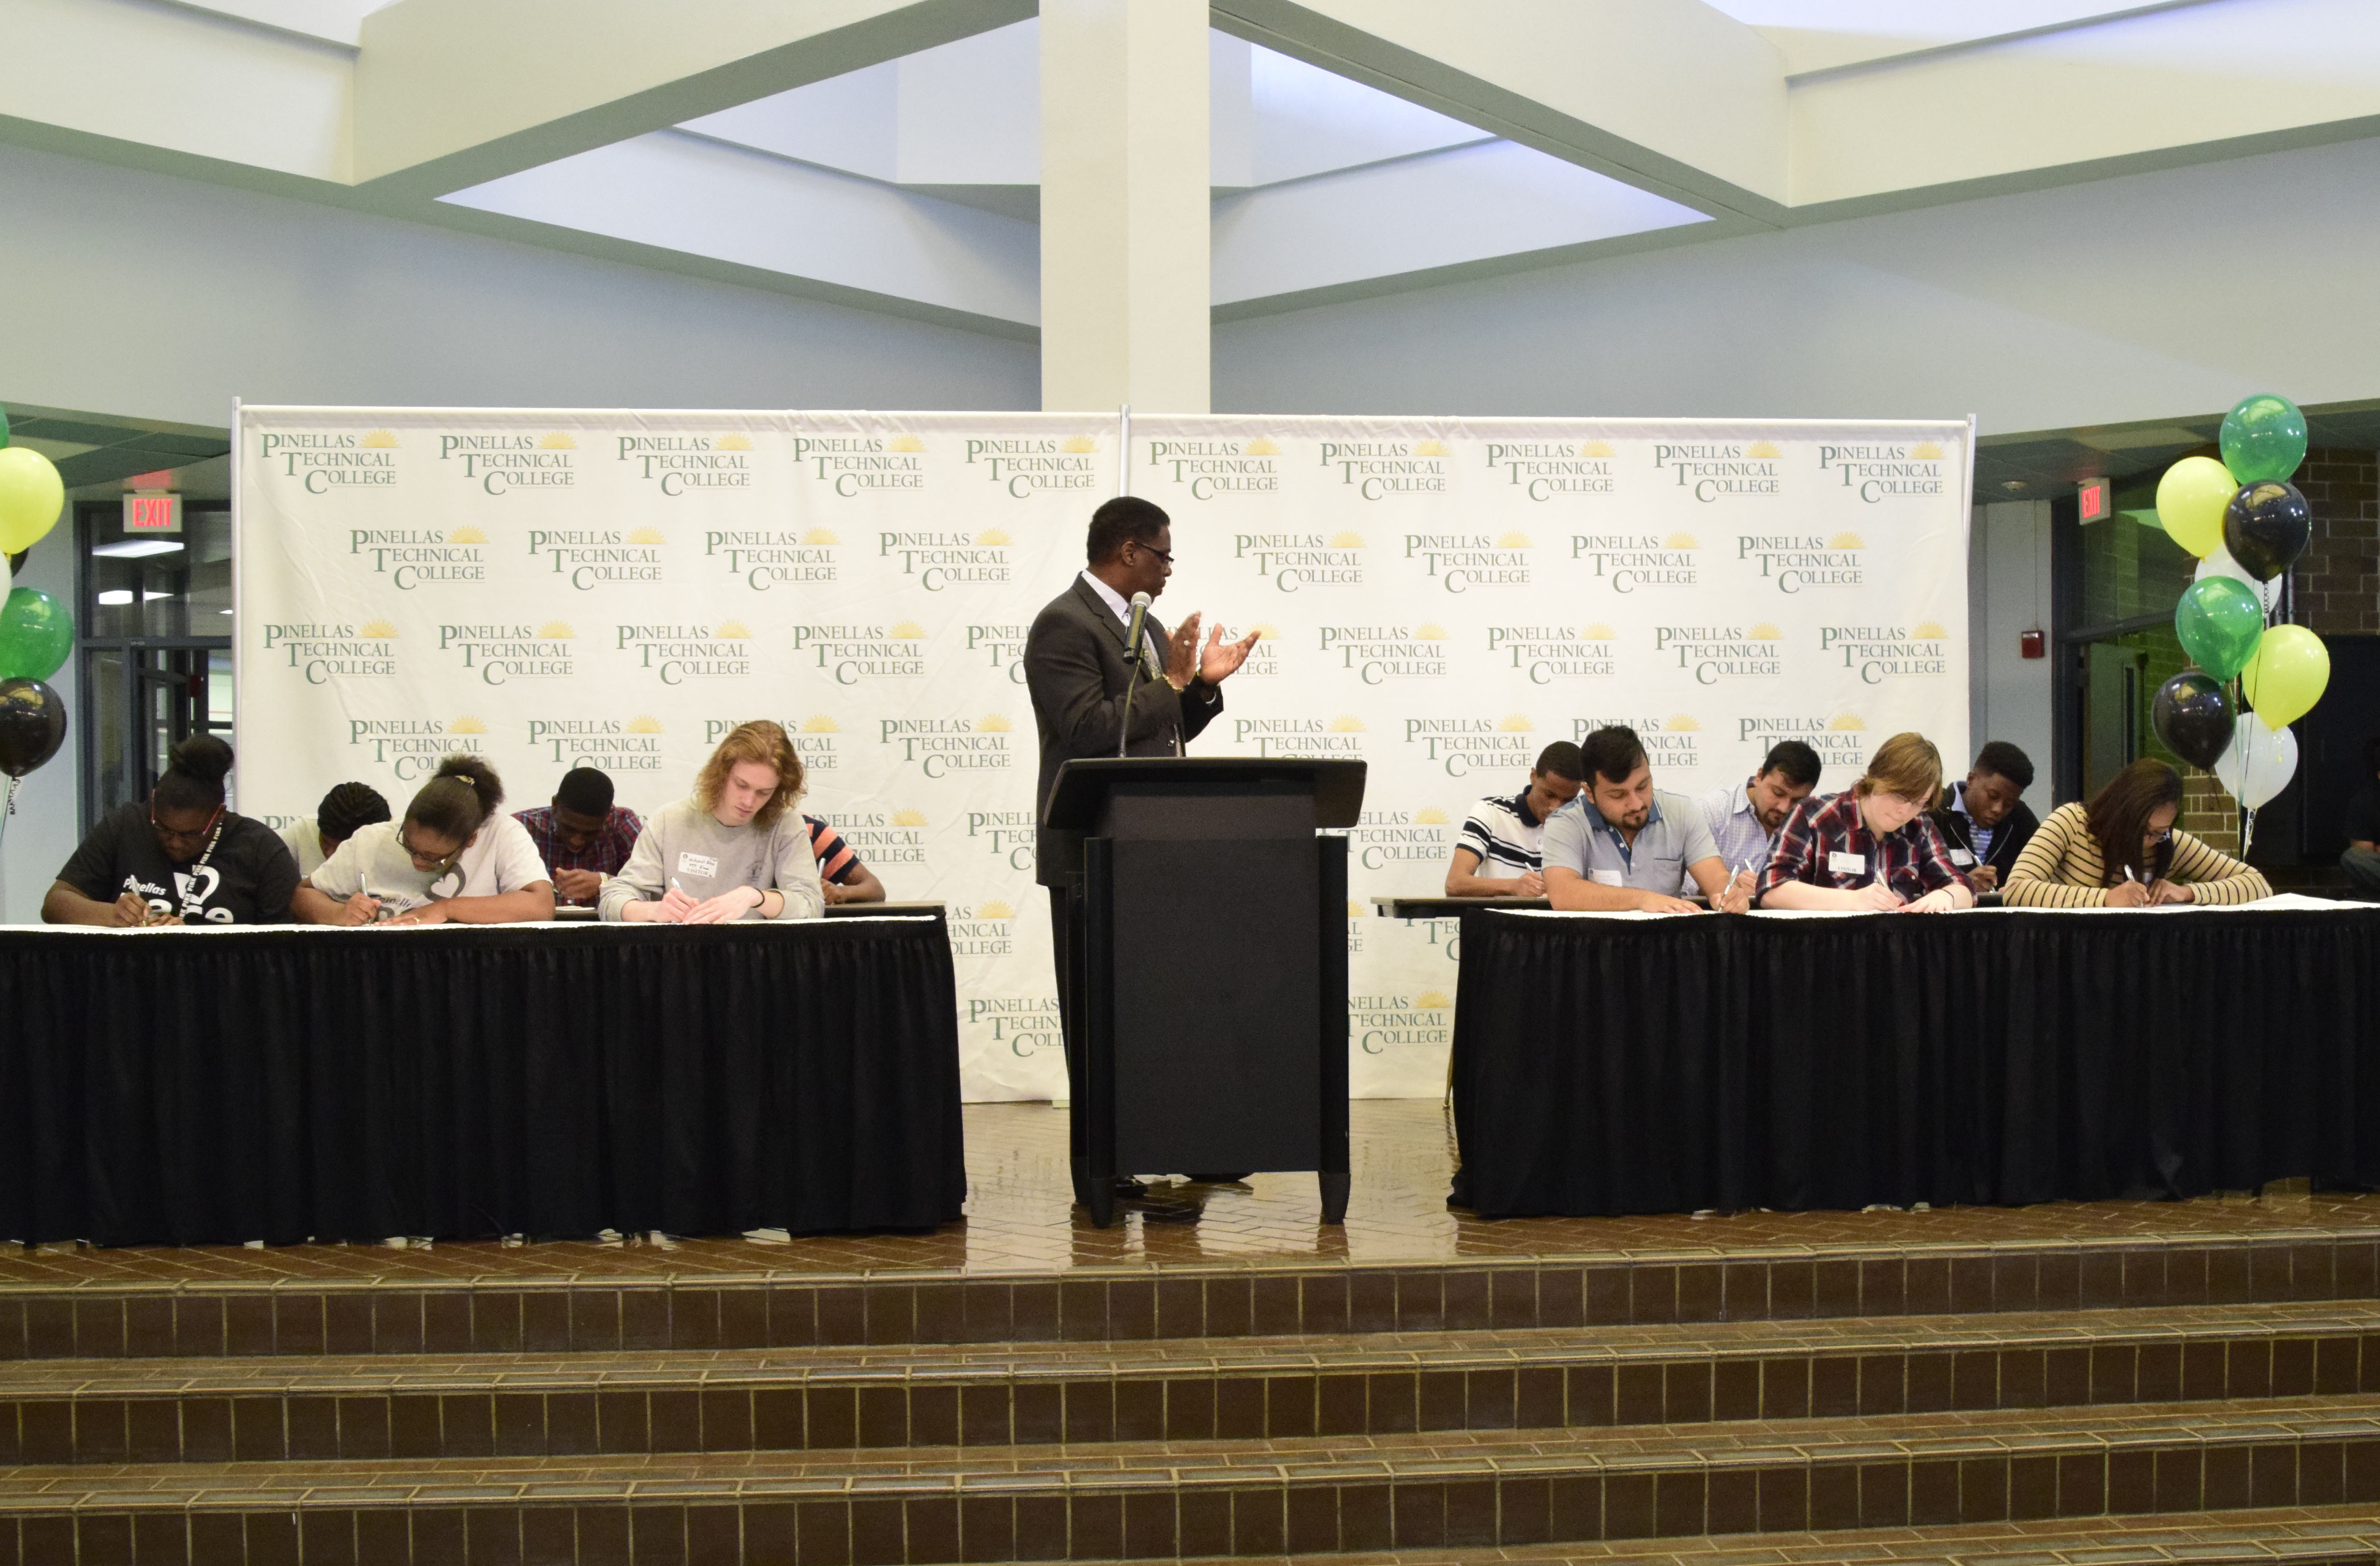 st pete signing day